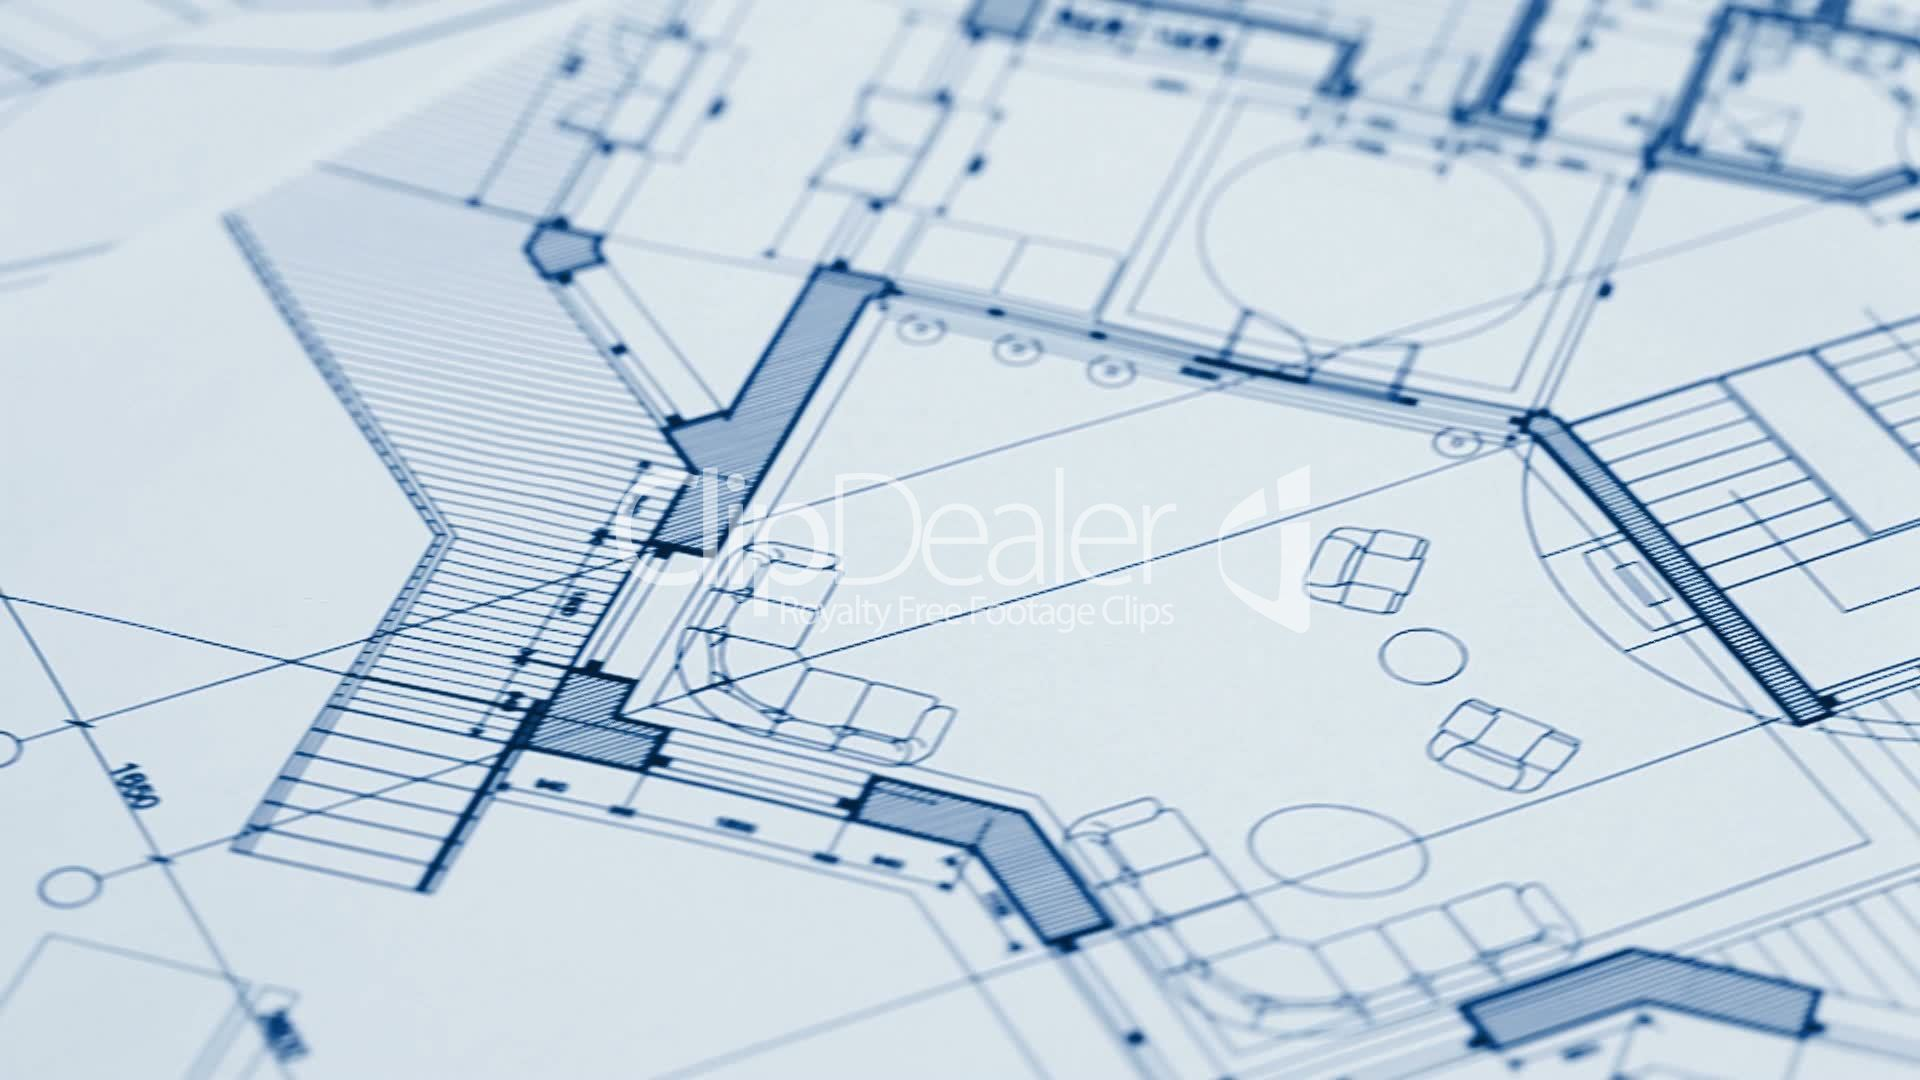 Perfect Architecture Blueprints Wallpaper E In Design Ideas